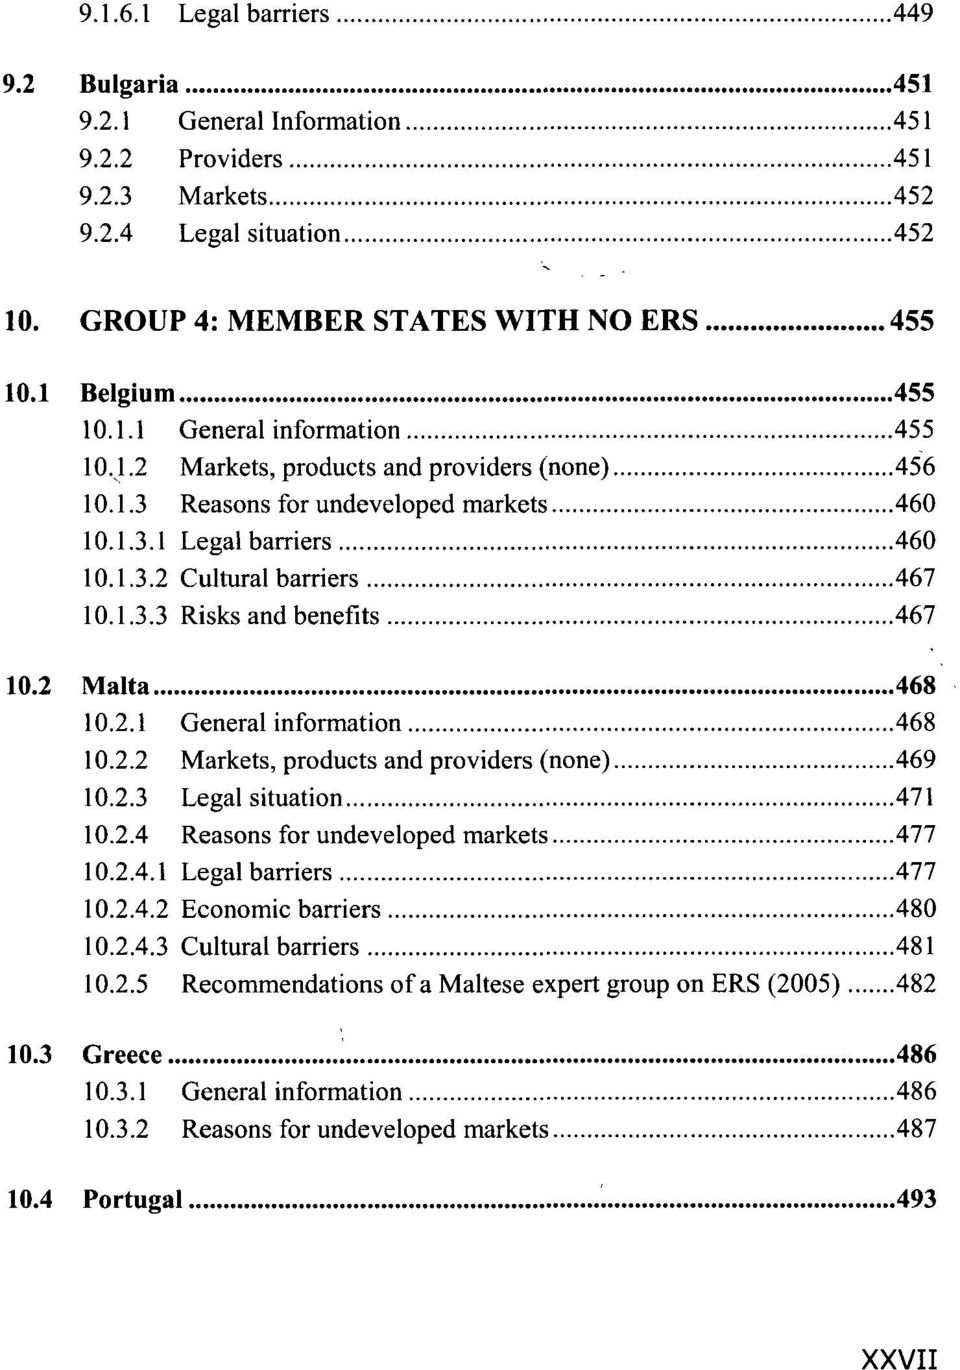 2 Malta 468 10.2.1 General information 468 10.2.2 Markets, products and providers (none) 469 10.2.3 Legal situation 471 10.2.4 Reasons for undeveloped markets 477 10.2.4.1 Legal barriers 477 10.2.4.2 Economic barriers 480 10.